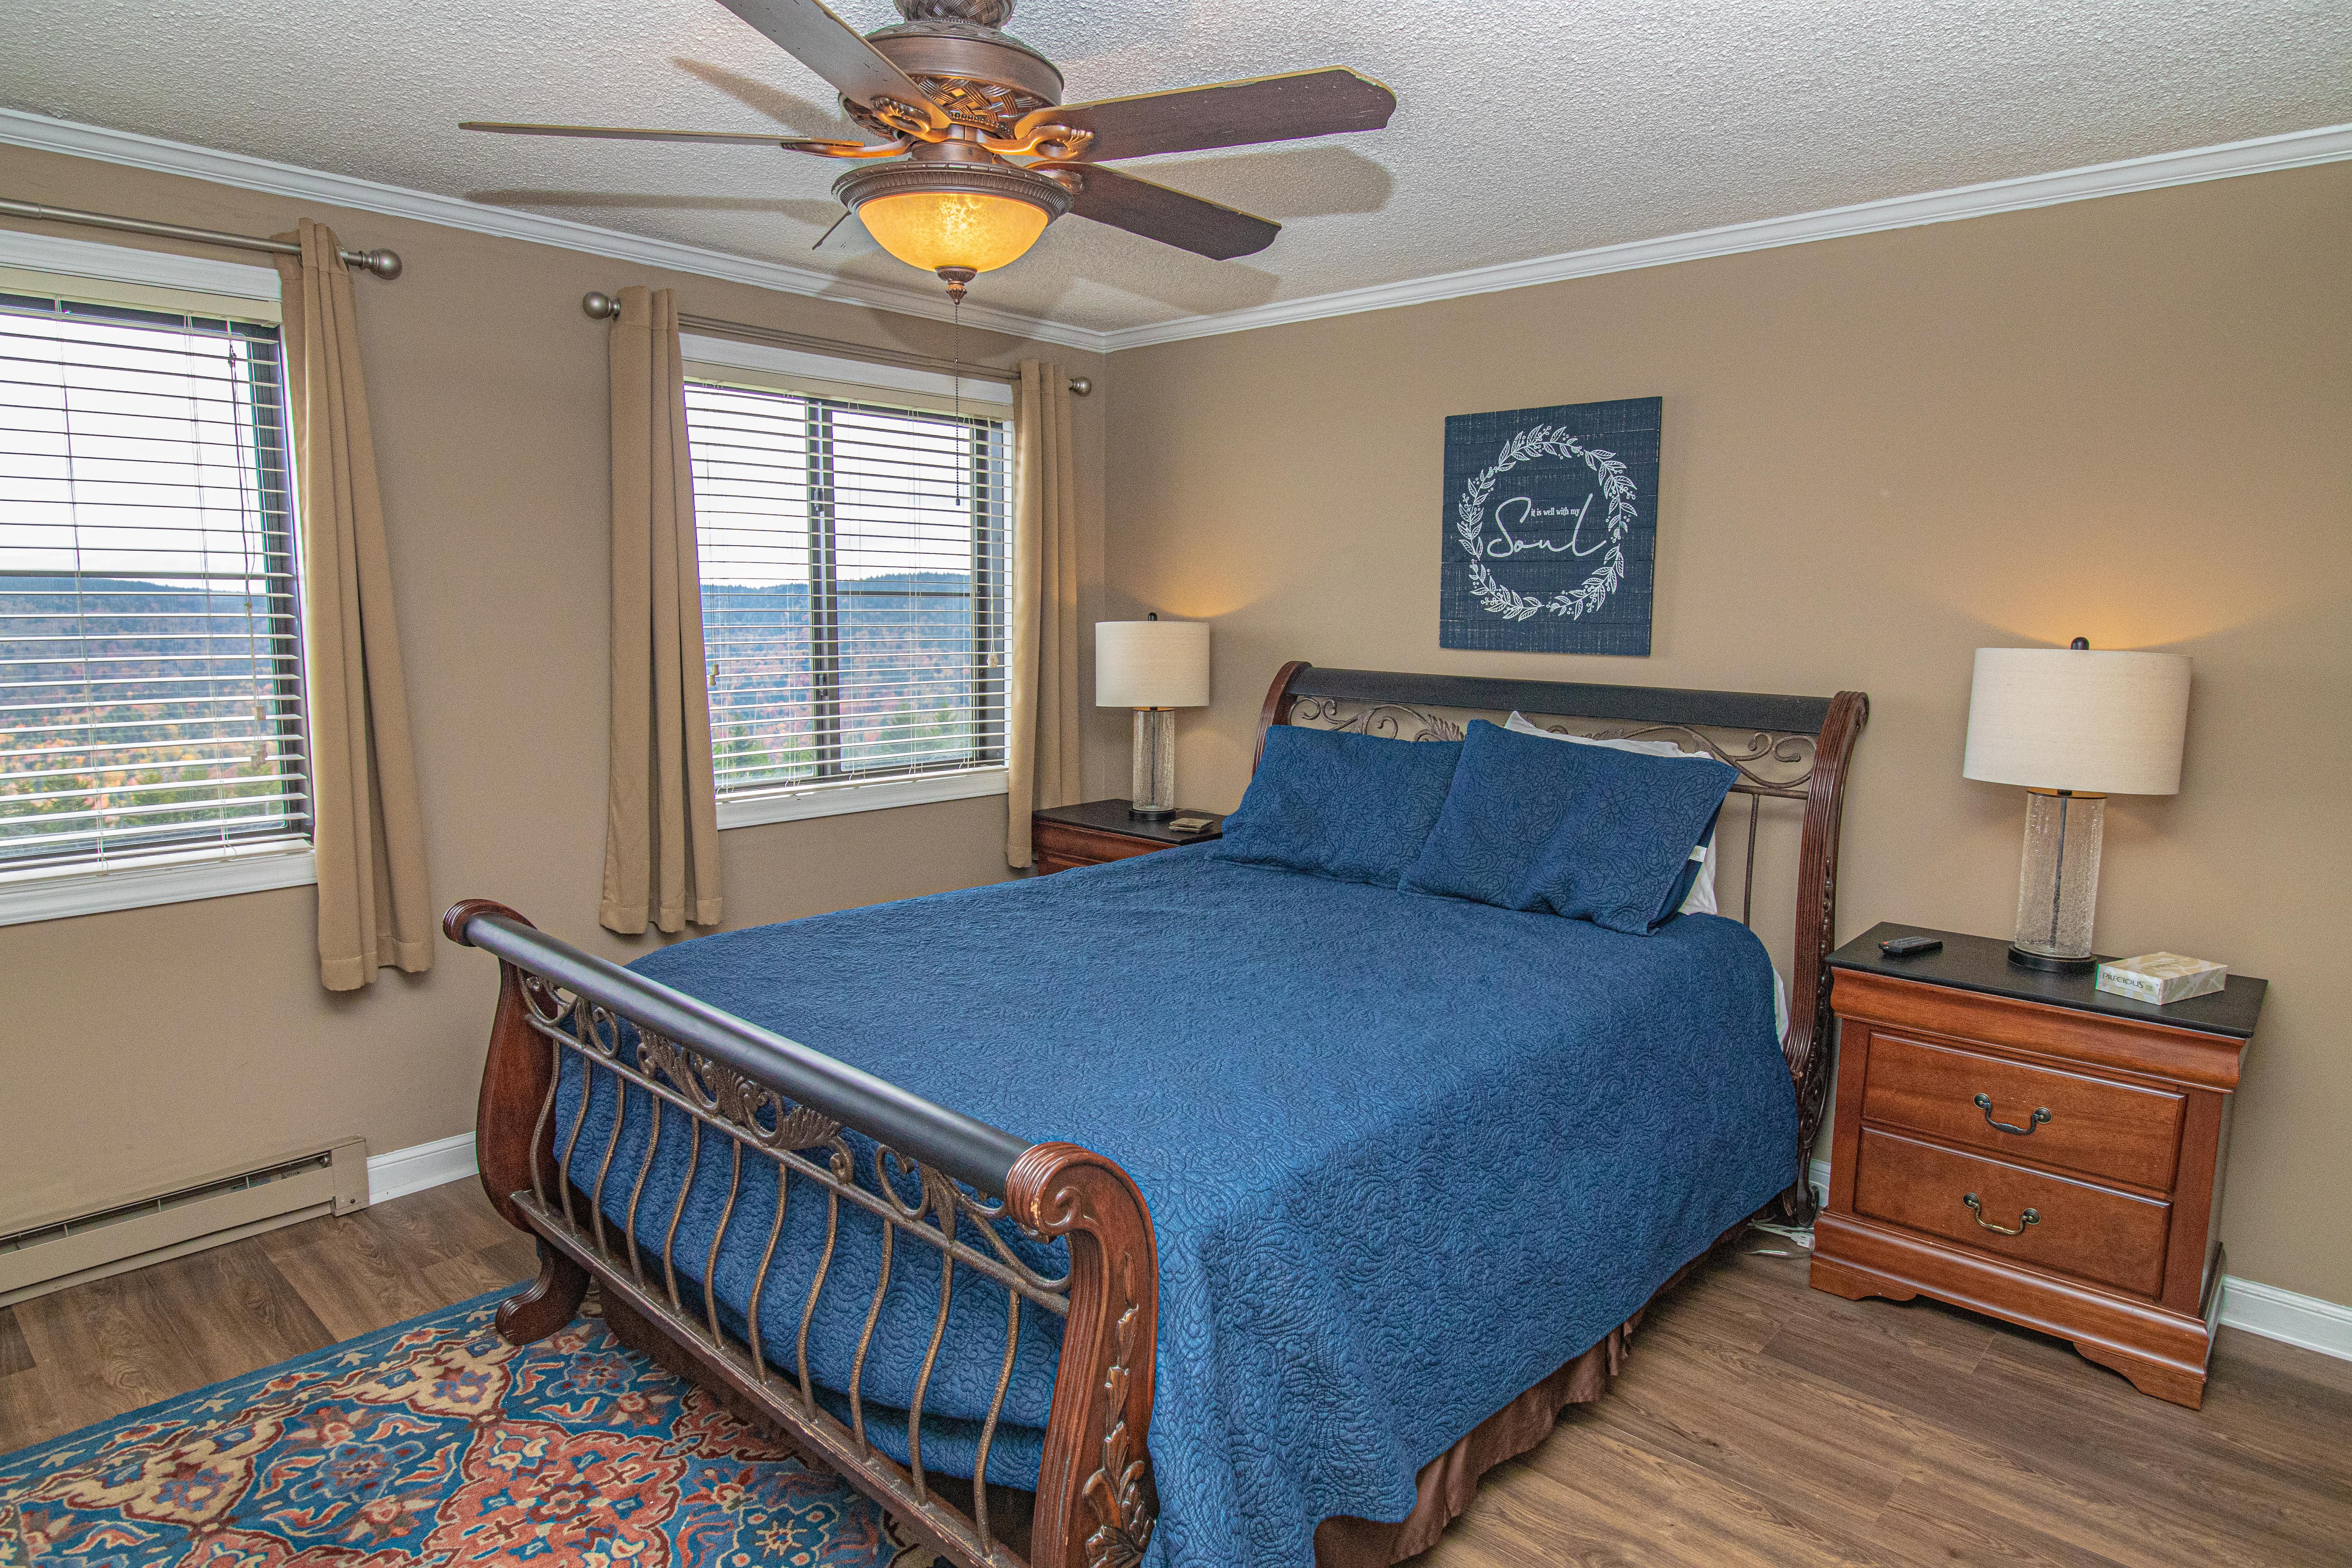 Queen-sized bed in master bedroom. Located on mountain side - NOT the hallway side of bldg!